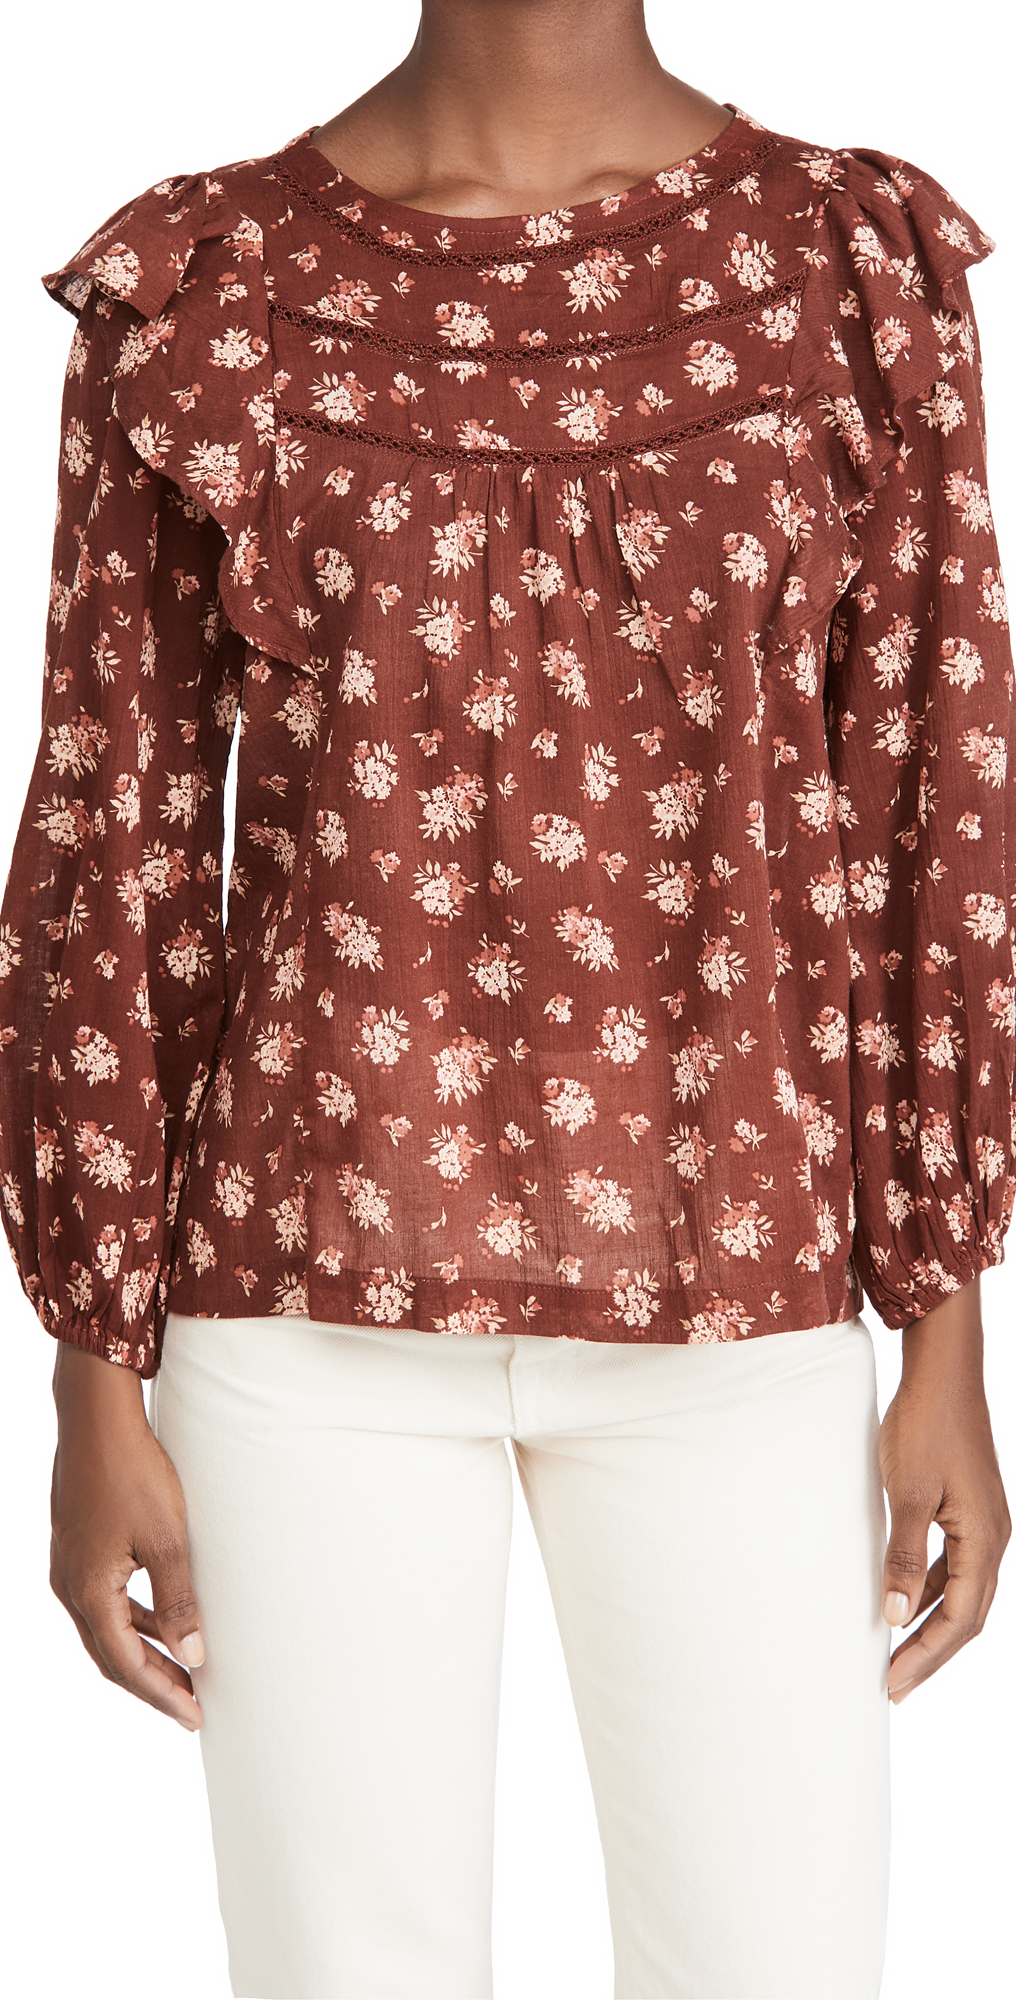 Madewell Avery Top